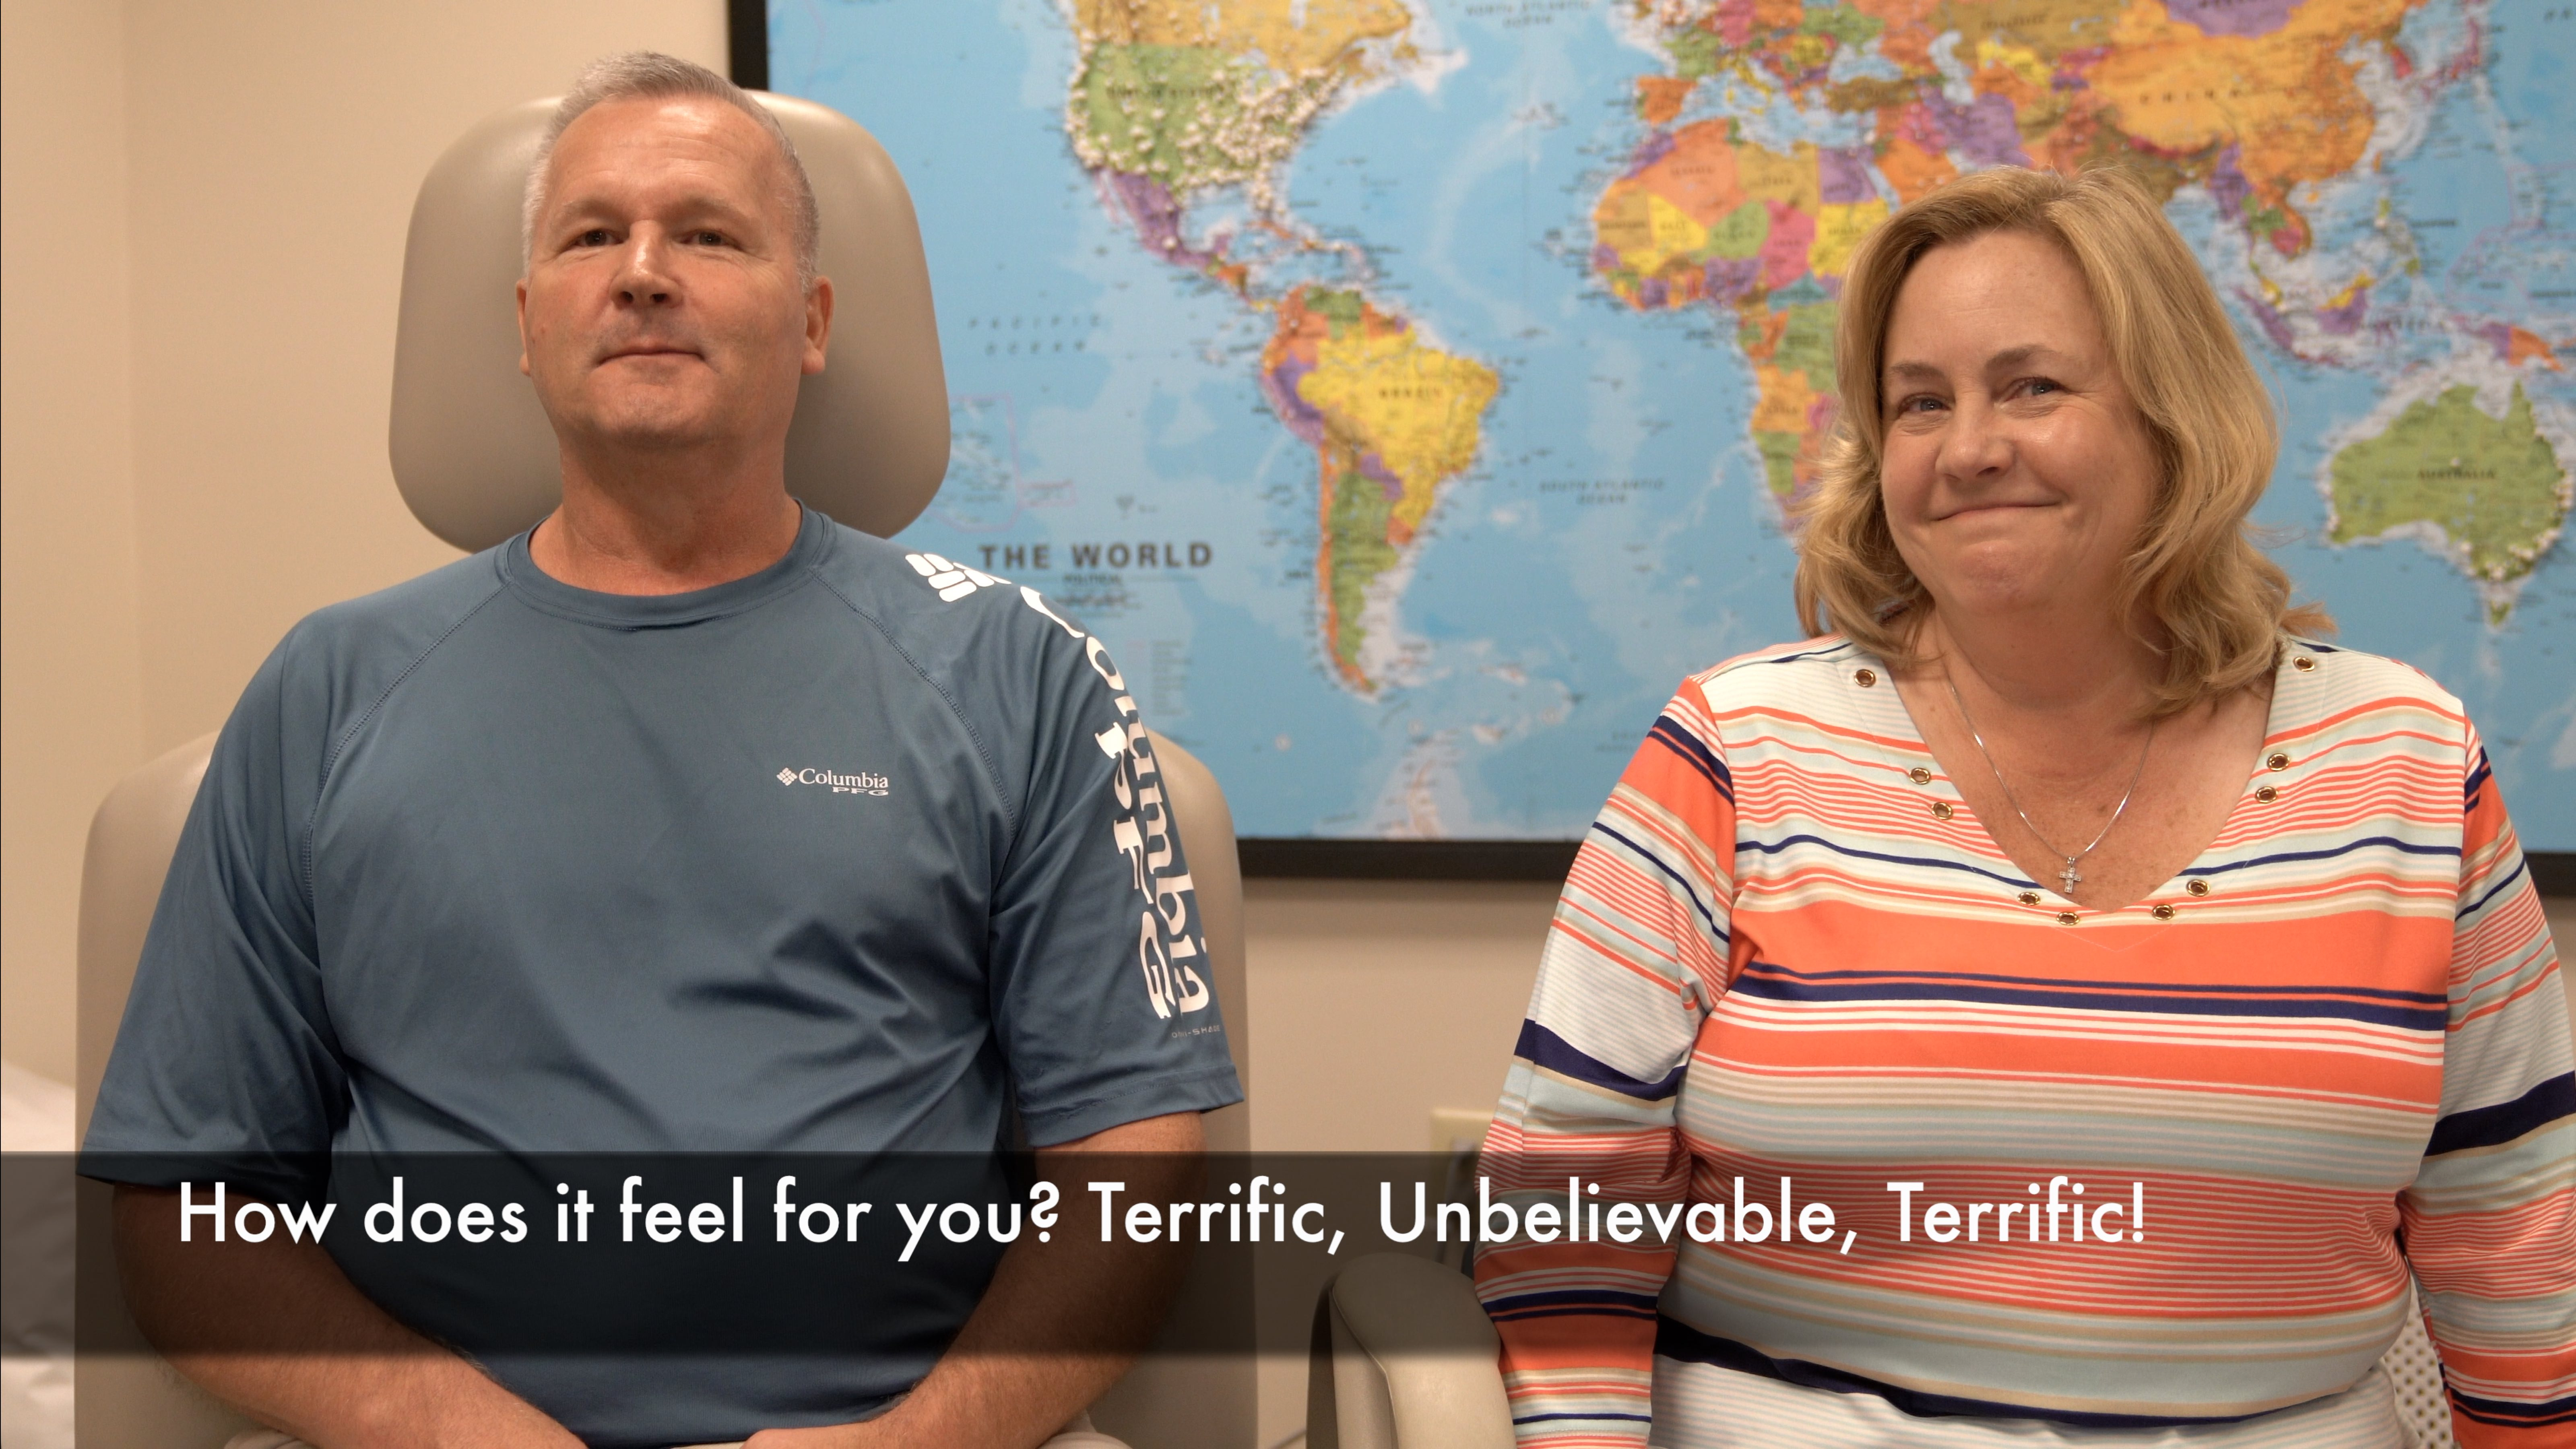 16 months after stroke, multiple improvements after treatment by Edward Tobinick, M.D.